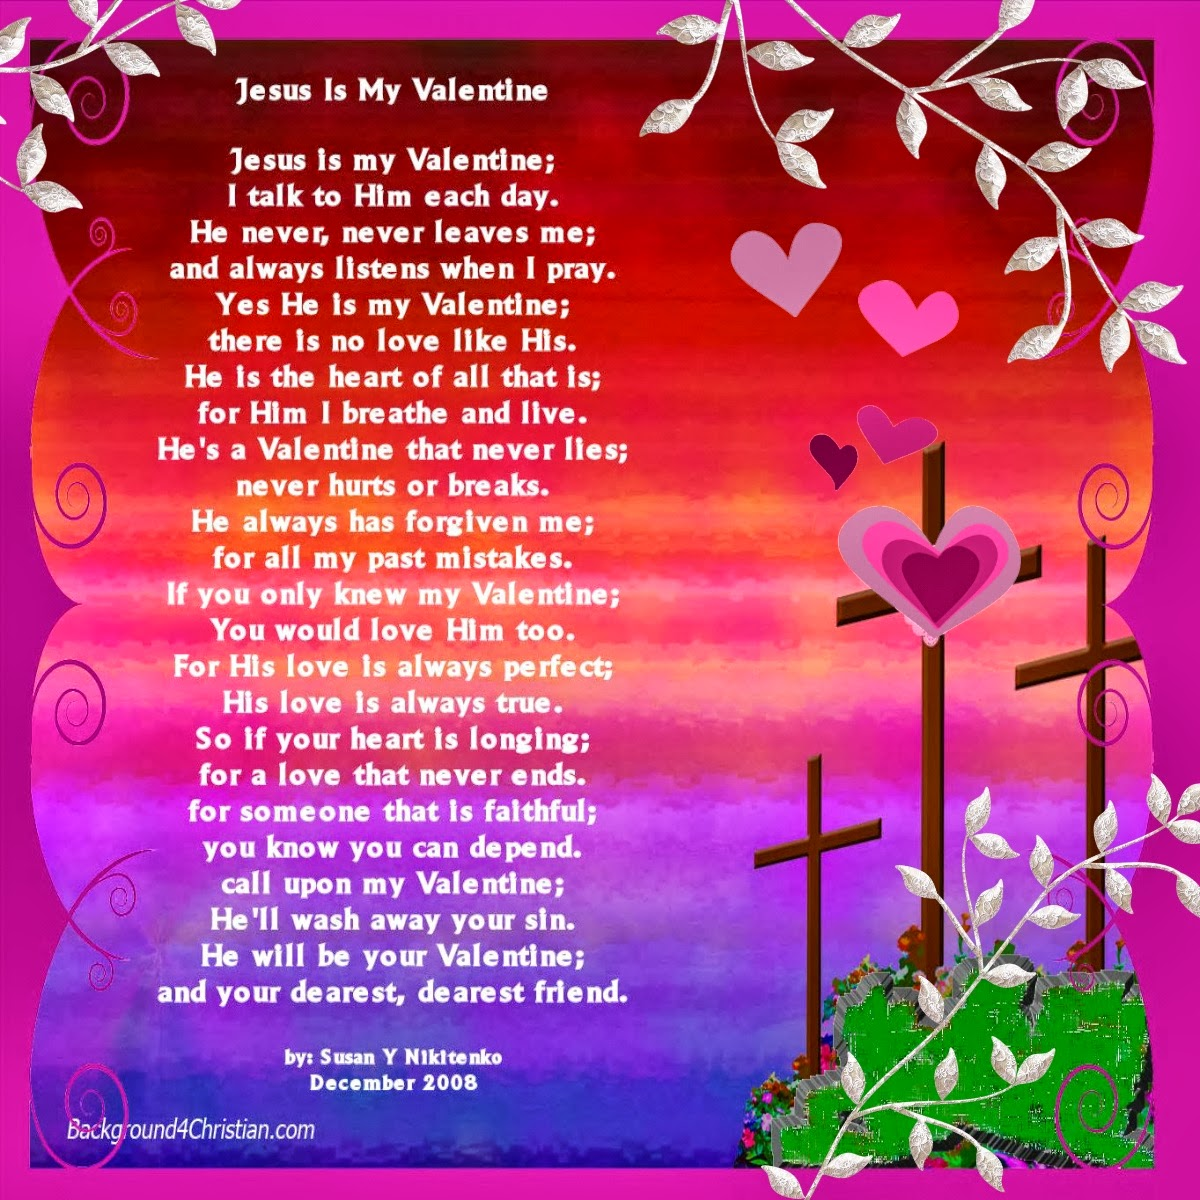 Valentines Day Quotes Famous Authors: Redneck Valentines Day Quotes. QuotesGram